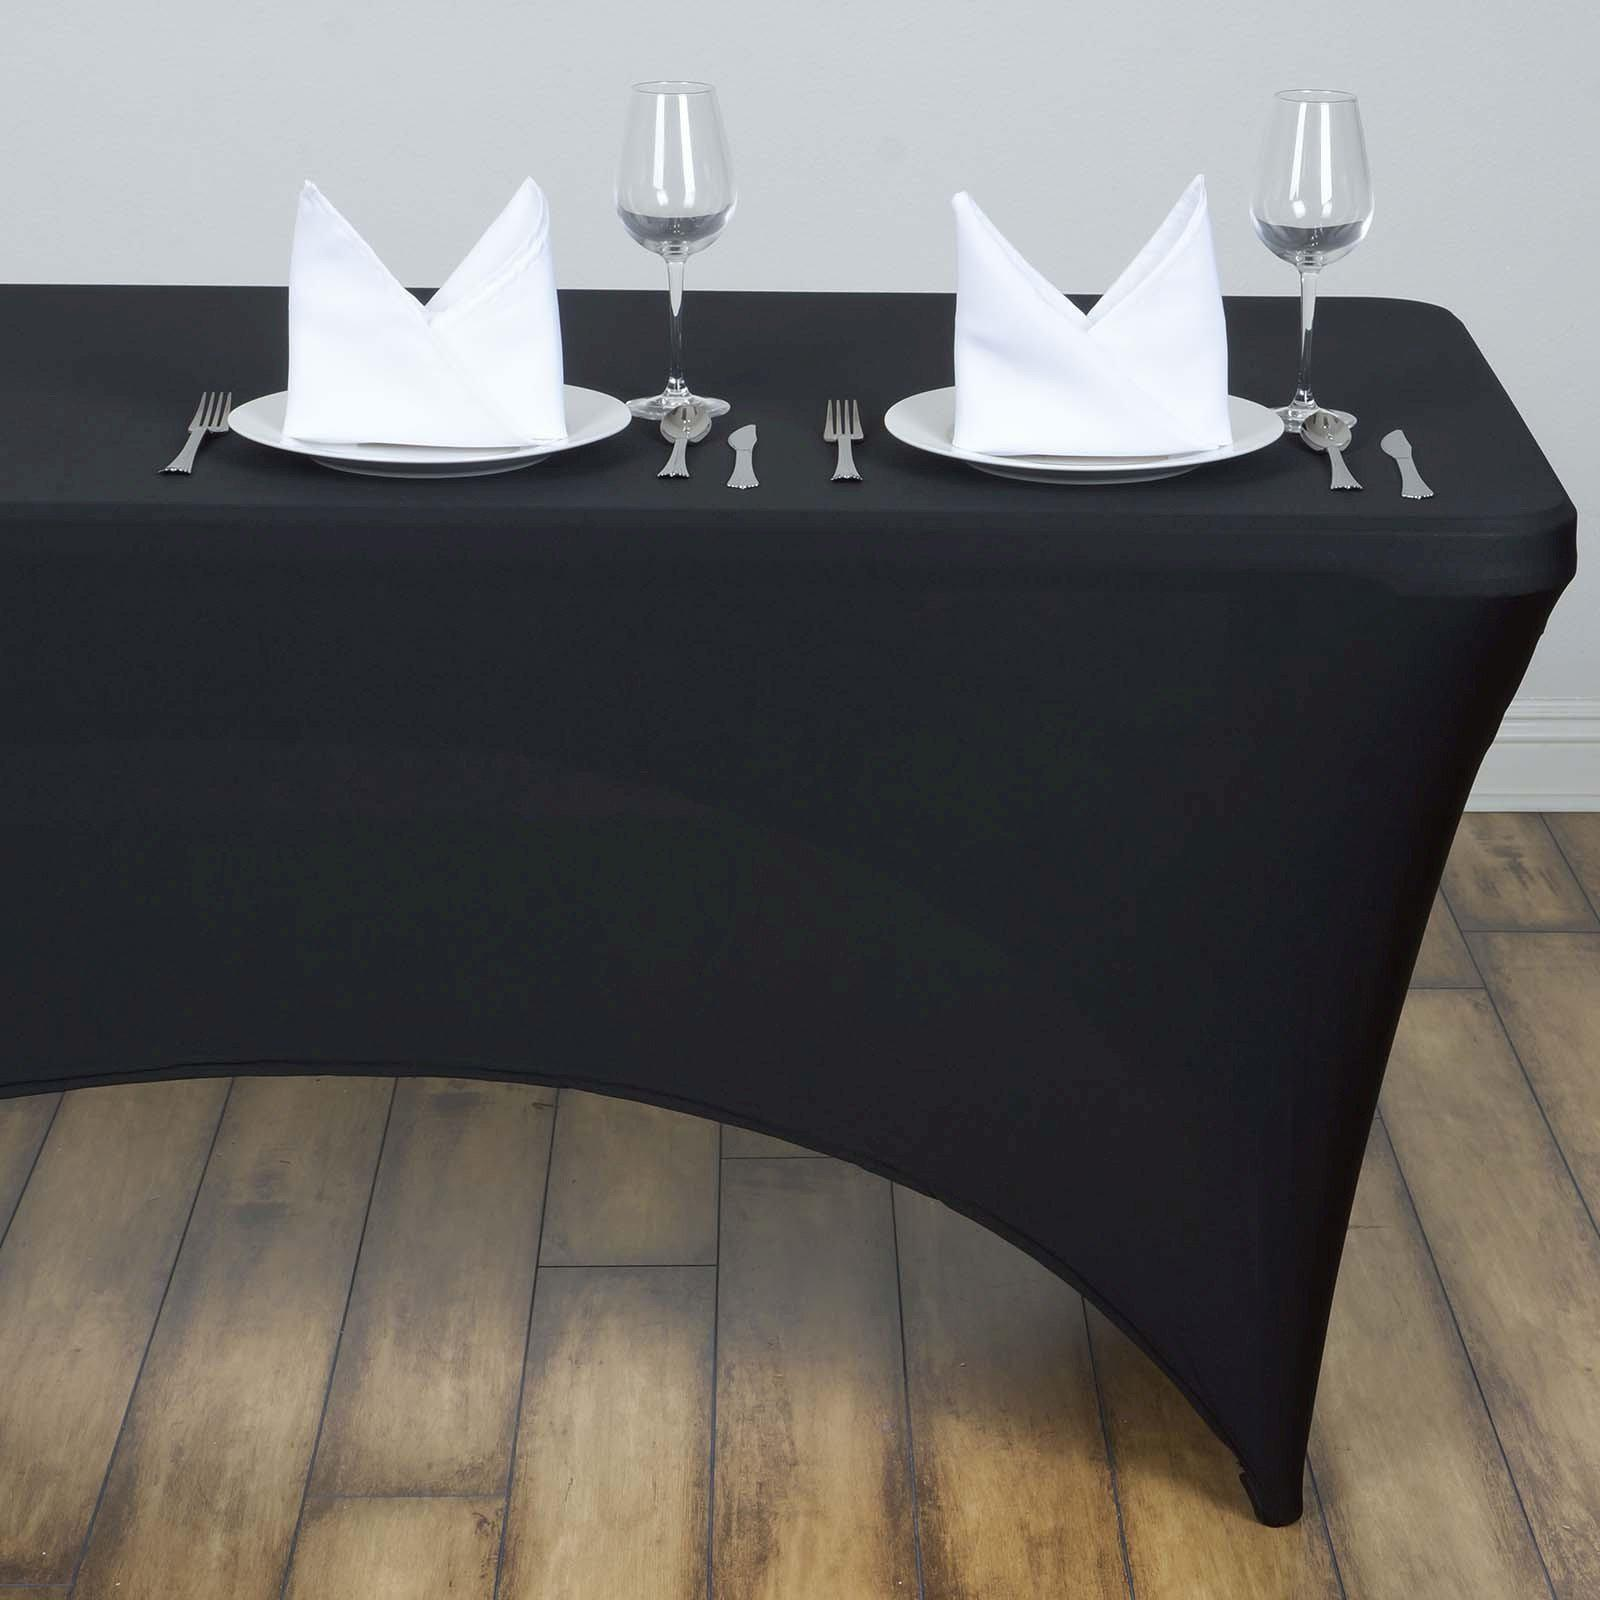 4 Ft Rectangular Spandex Table Cover Black